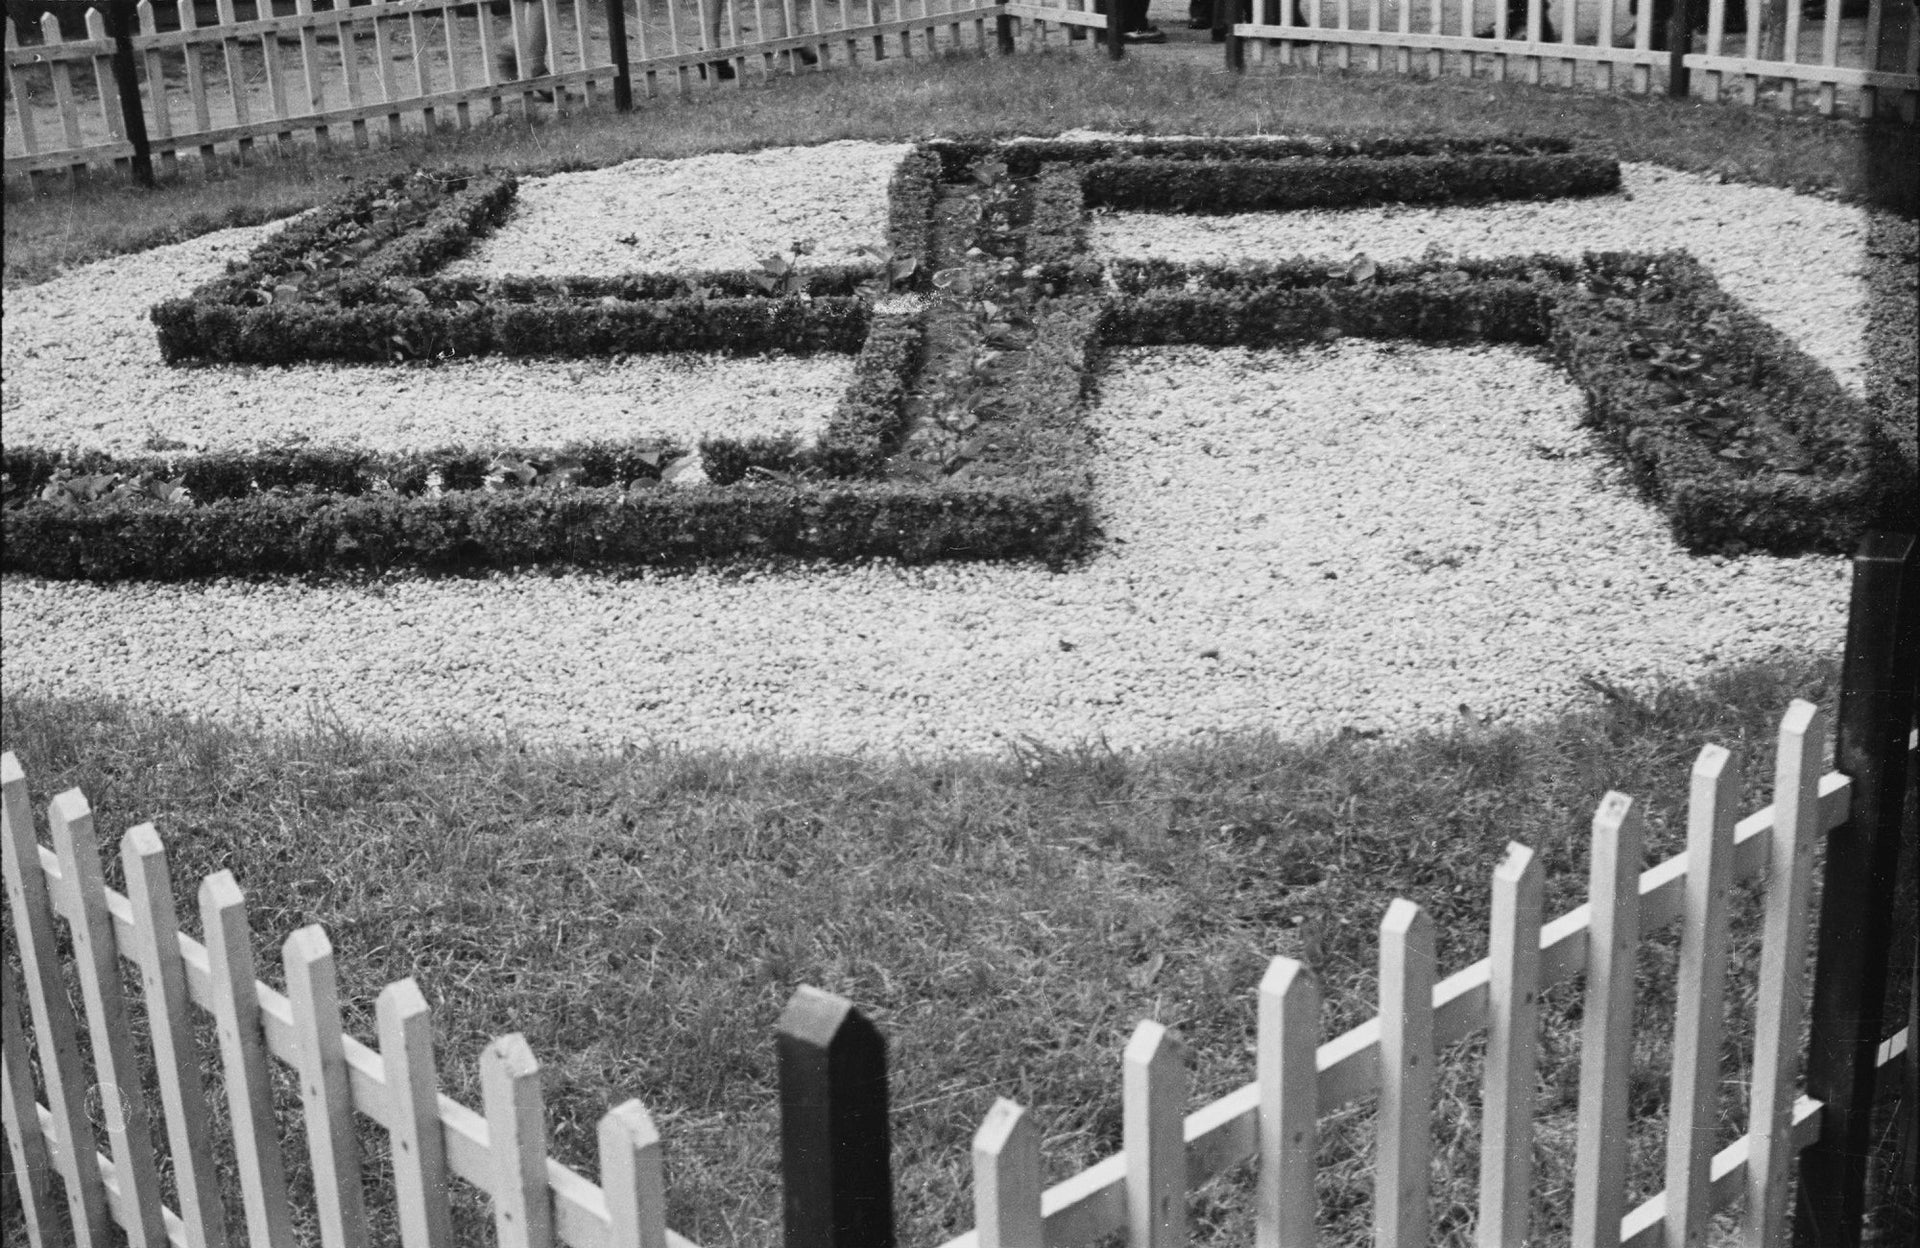 In this May 22, 1938 photo provided by the New York City Municipal Archives, a large swastika is surrounded by a white picket fence at Camp Siegfried in Yaphank, N.Y.